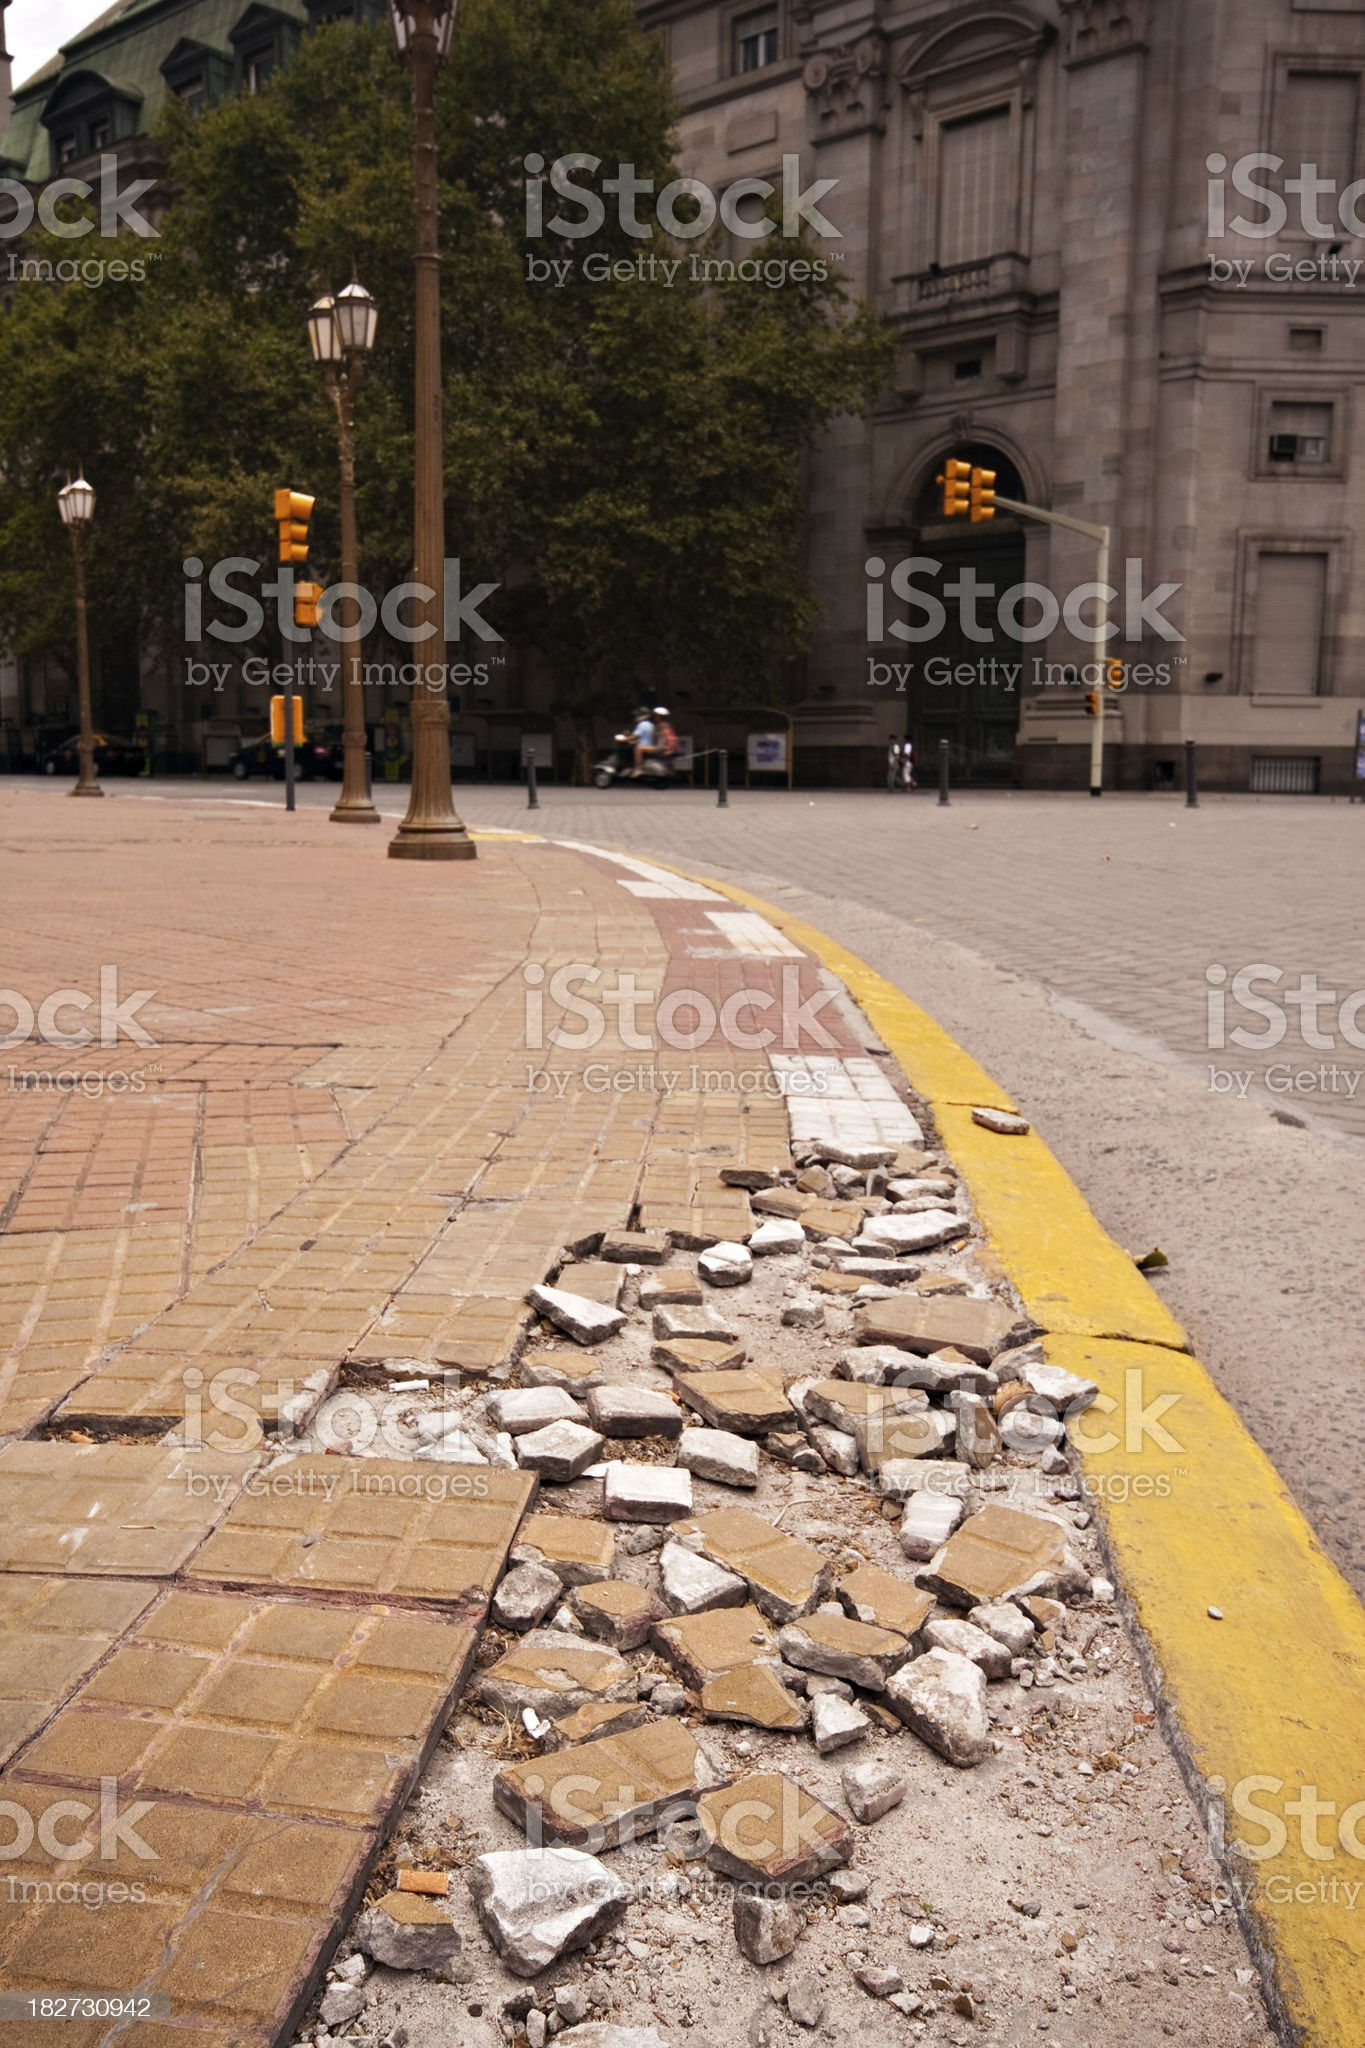 City Maintenance Needed royalty-free stock photo